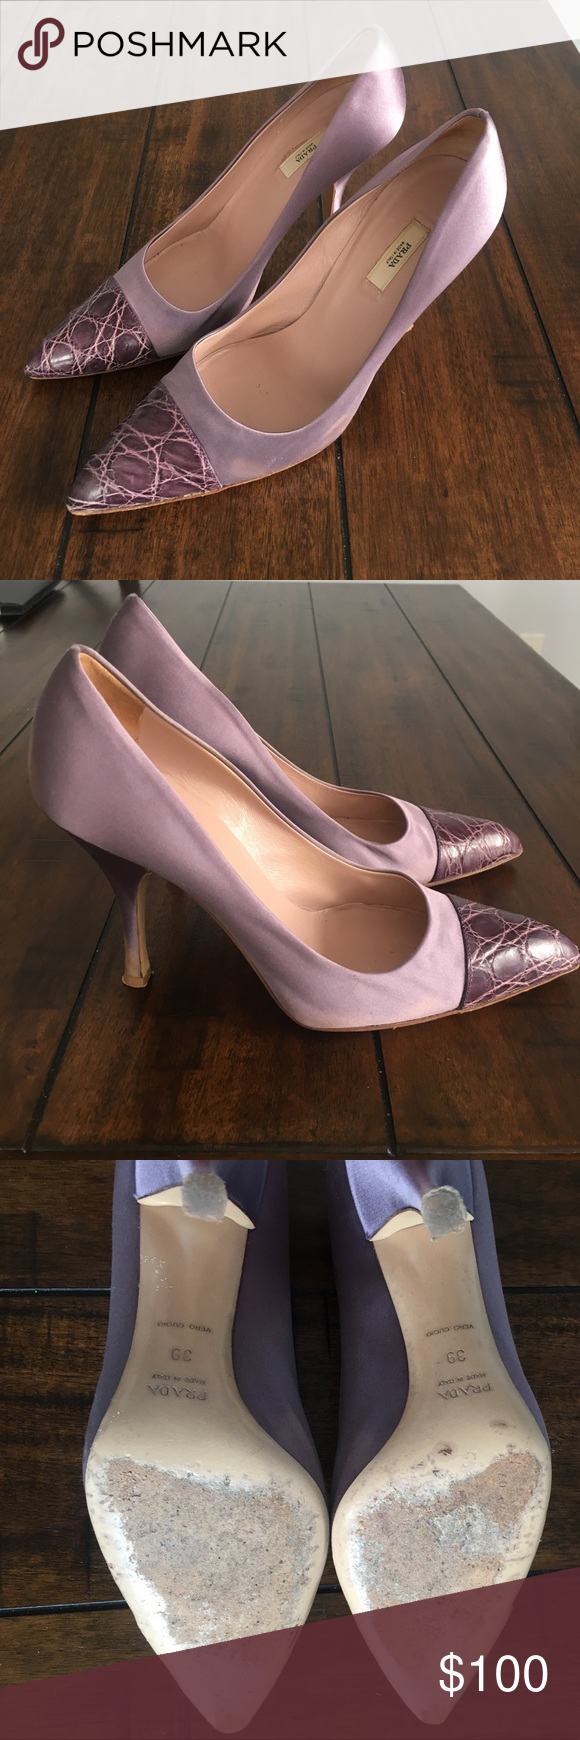 6829483485c Lavender Satin and Snakeskin Prada Pumps GORGEOUS Prada Heels. Lavender  satin and snakeskin tips. Size 39 but a bit narrow - would recommend for a  usual US ...